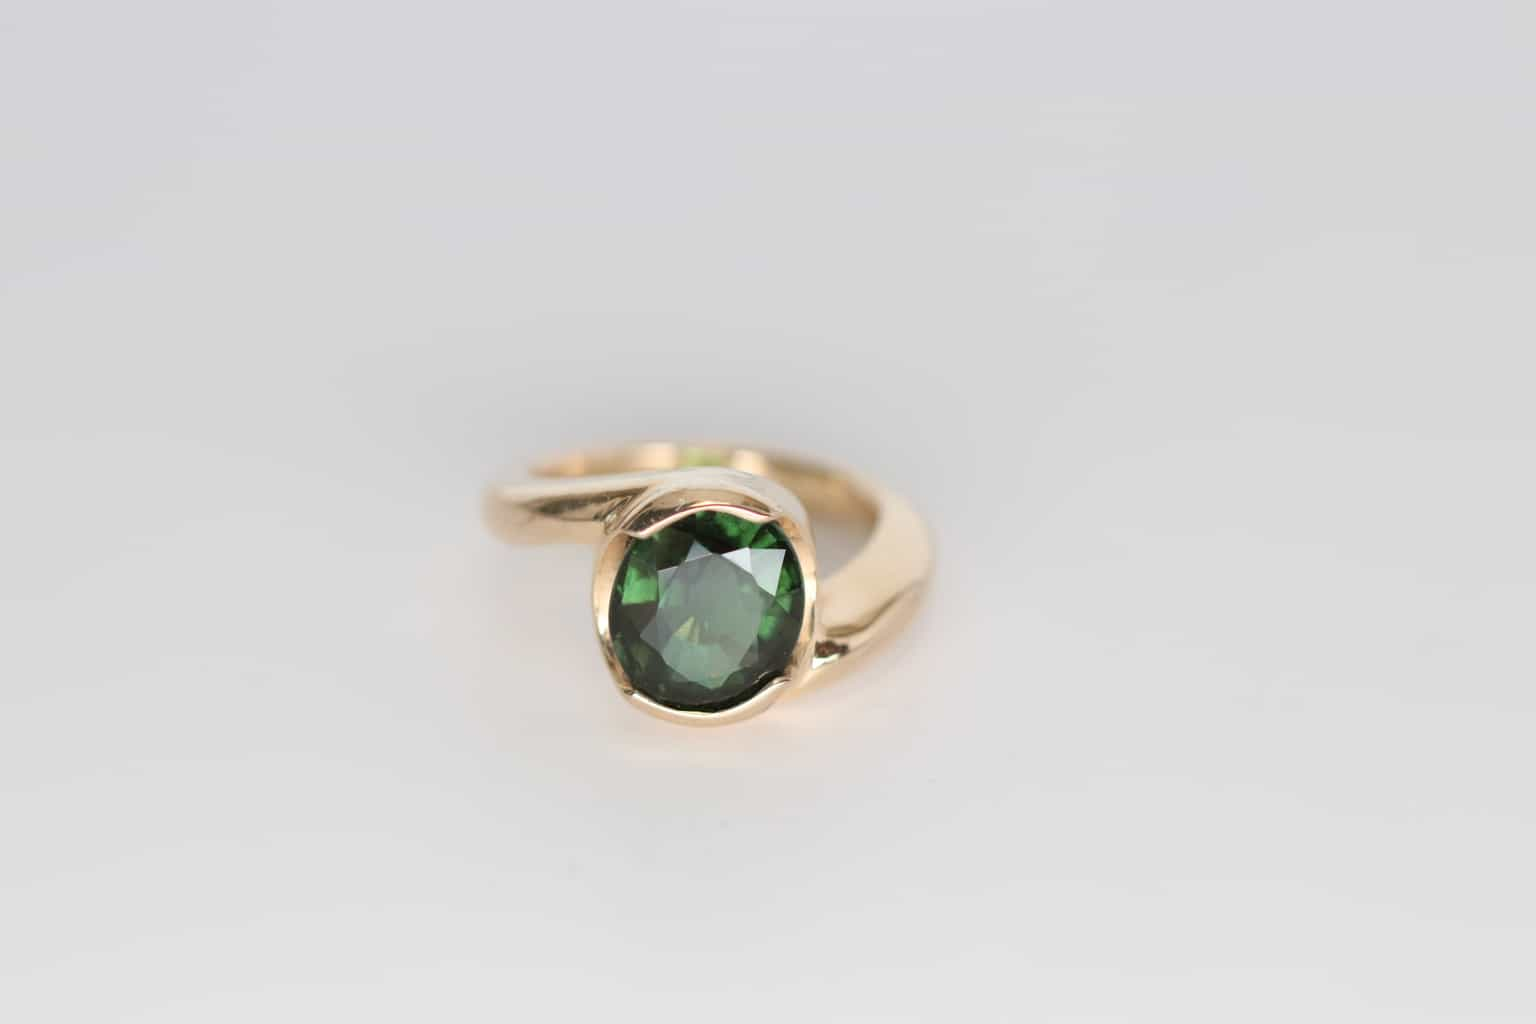 tourmaline tone green mark a rings michael designs seafoam of one engagement kind diamond ring two